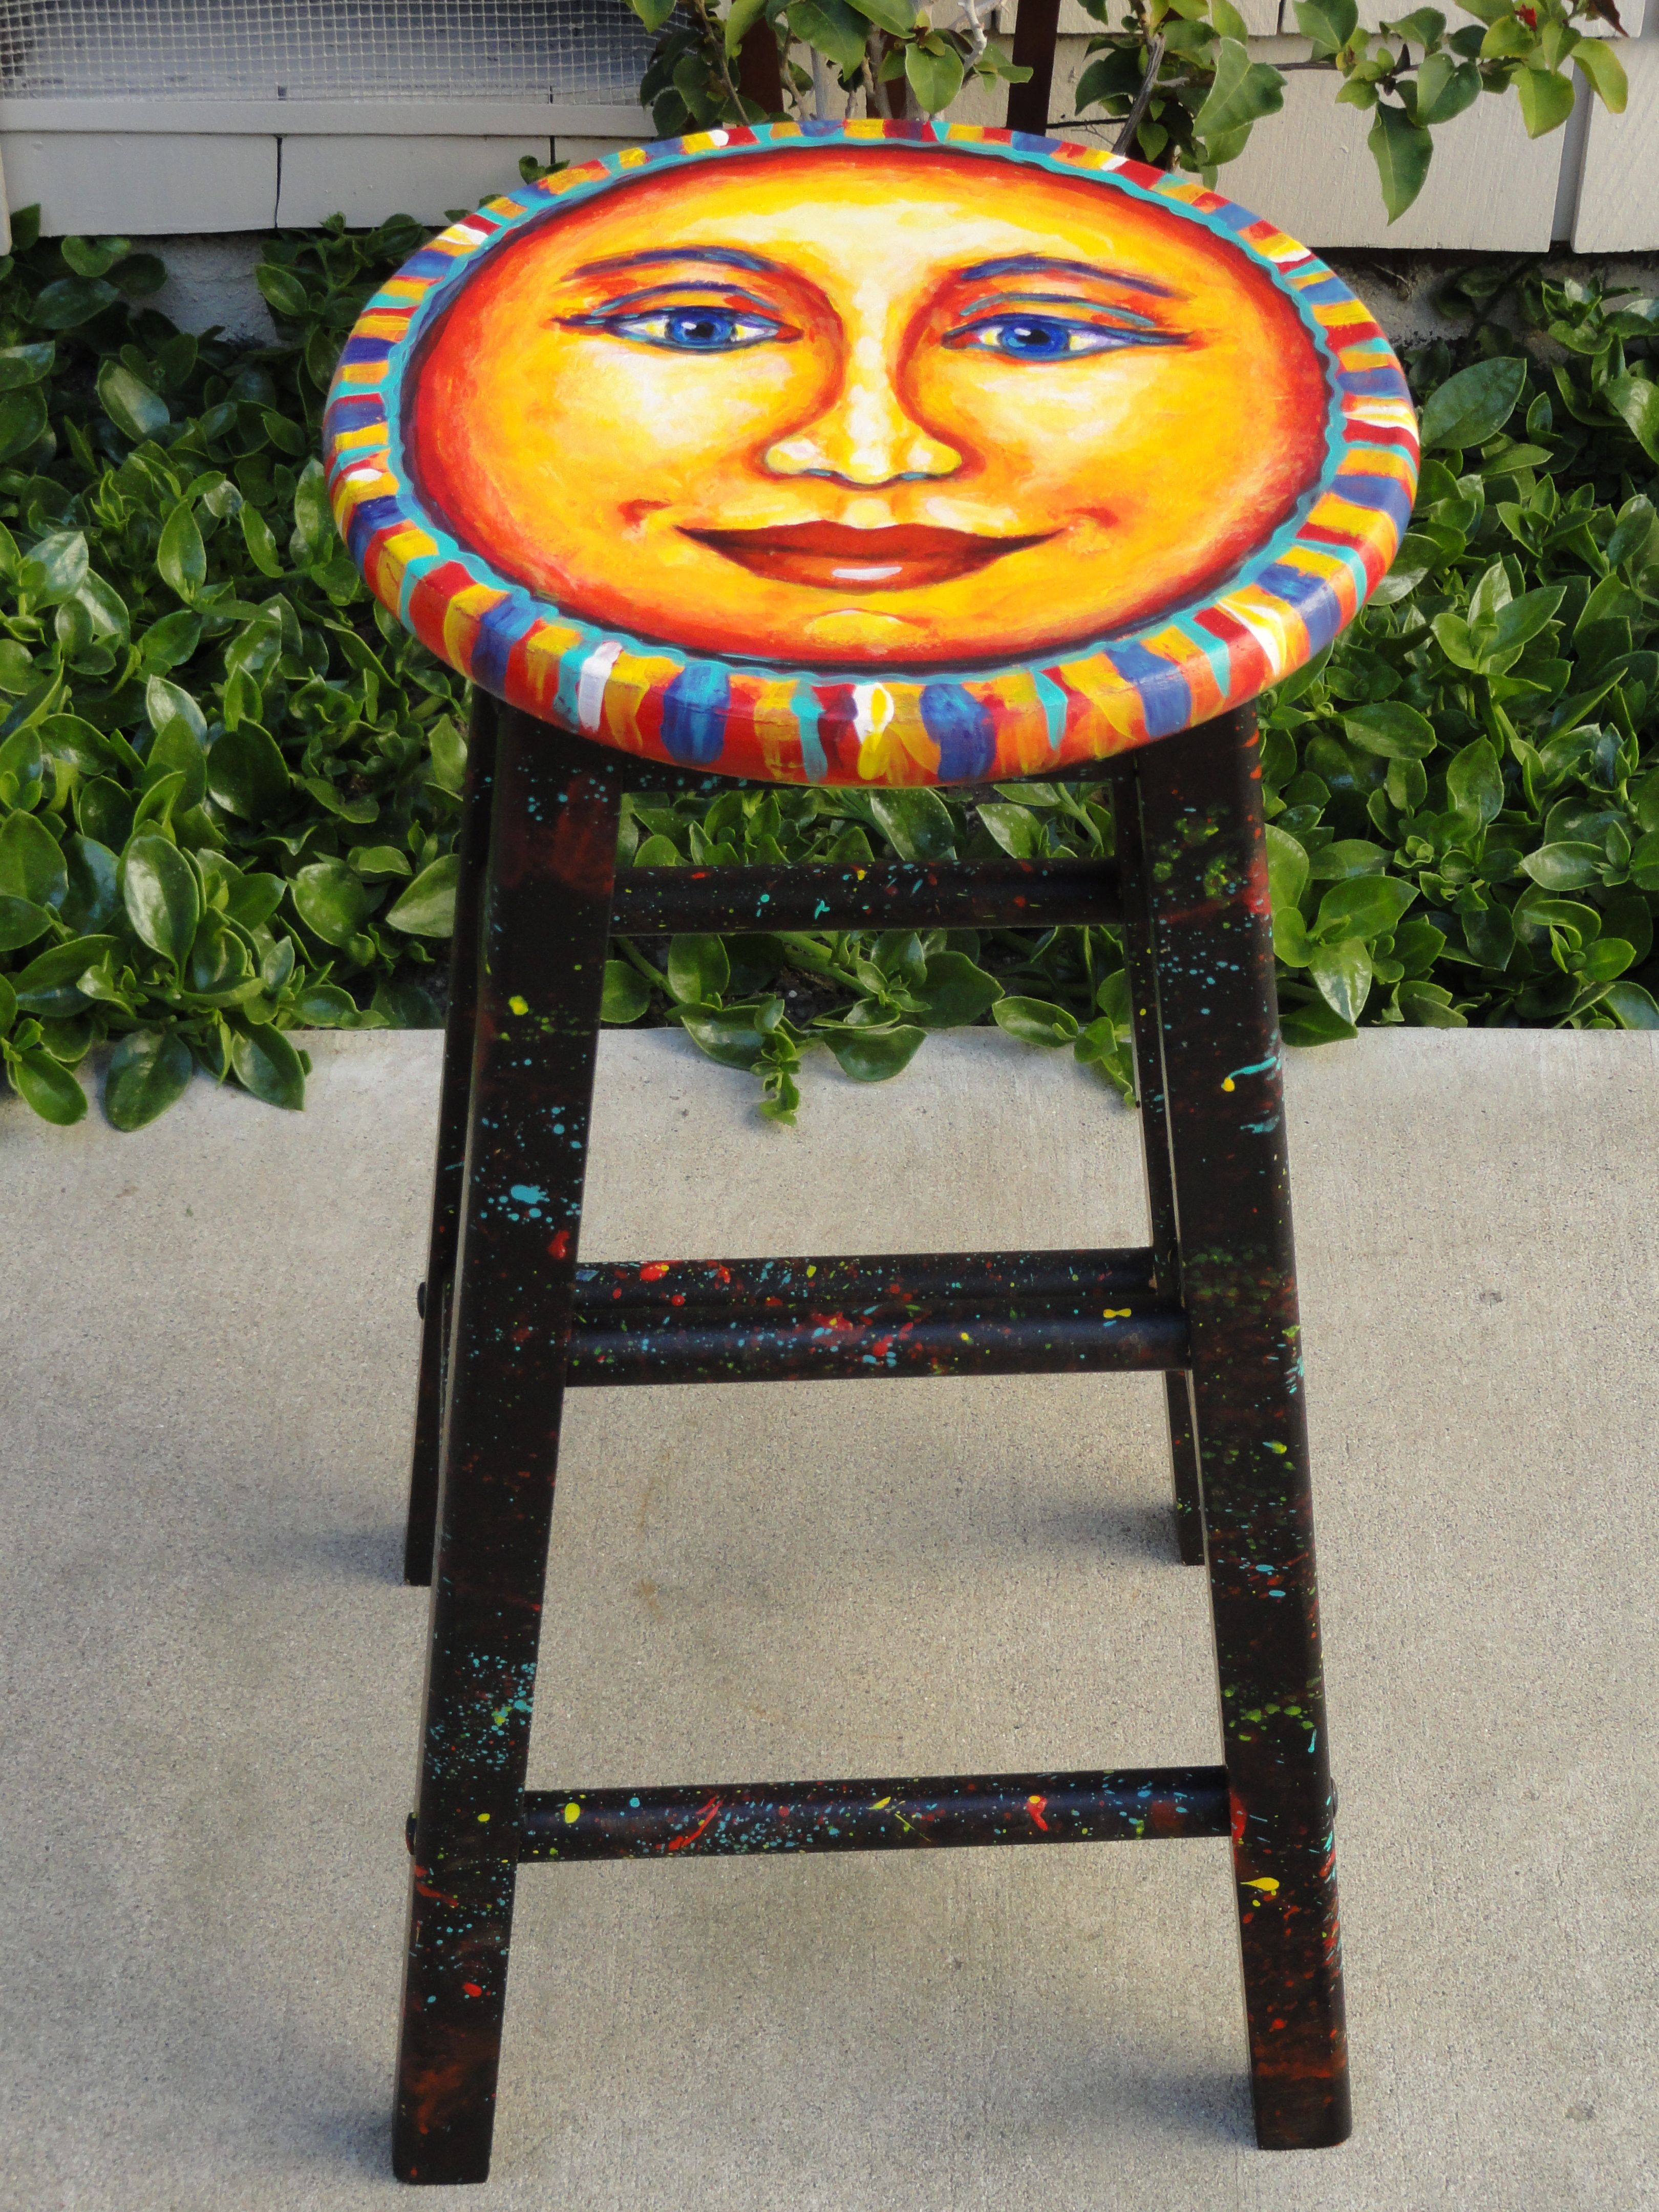 Charming Chair Sun Shannon Grissom new home stuff